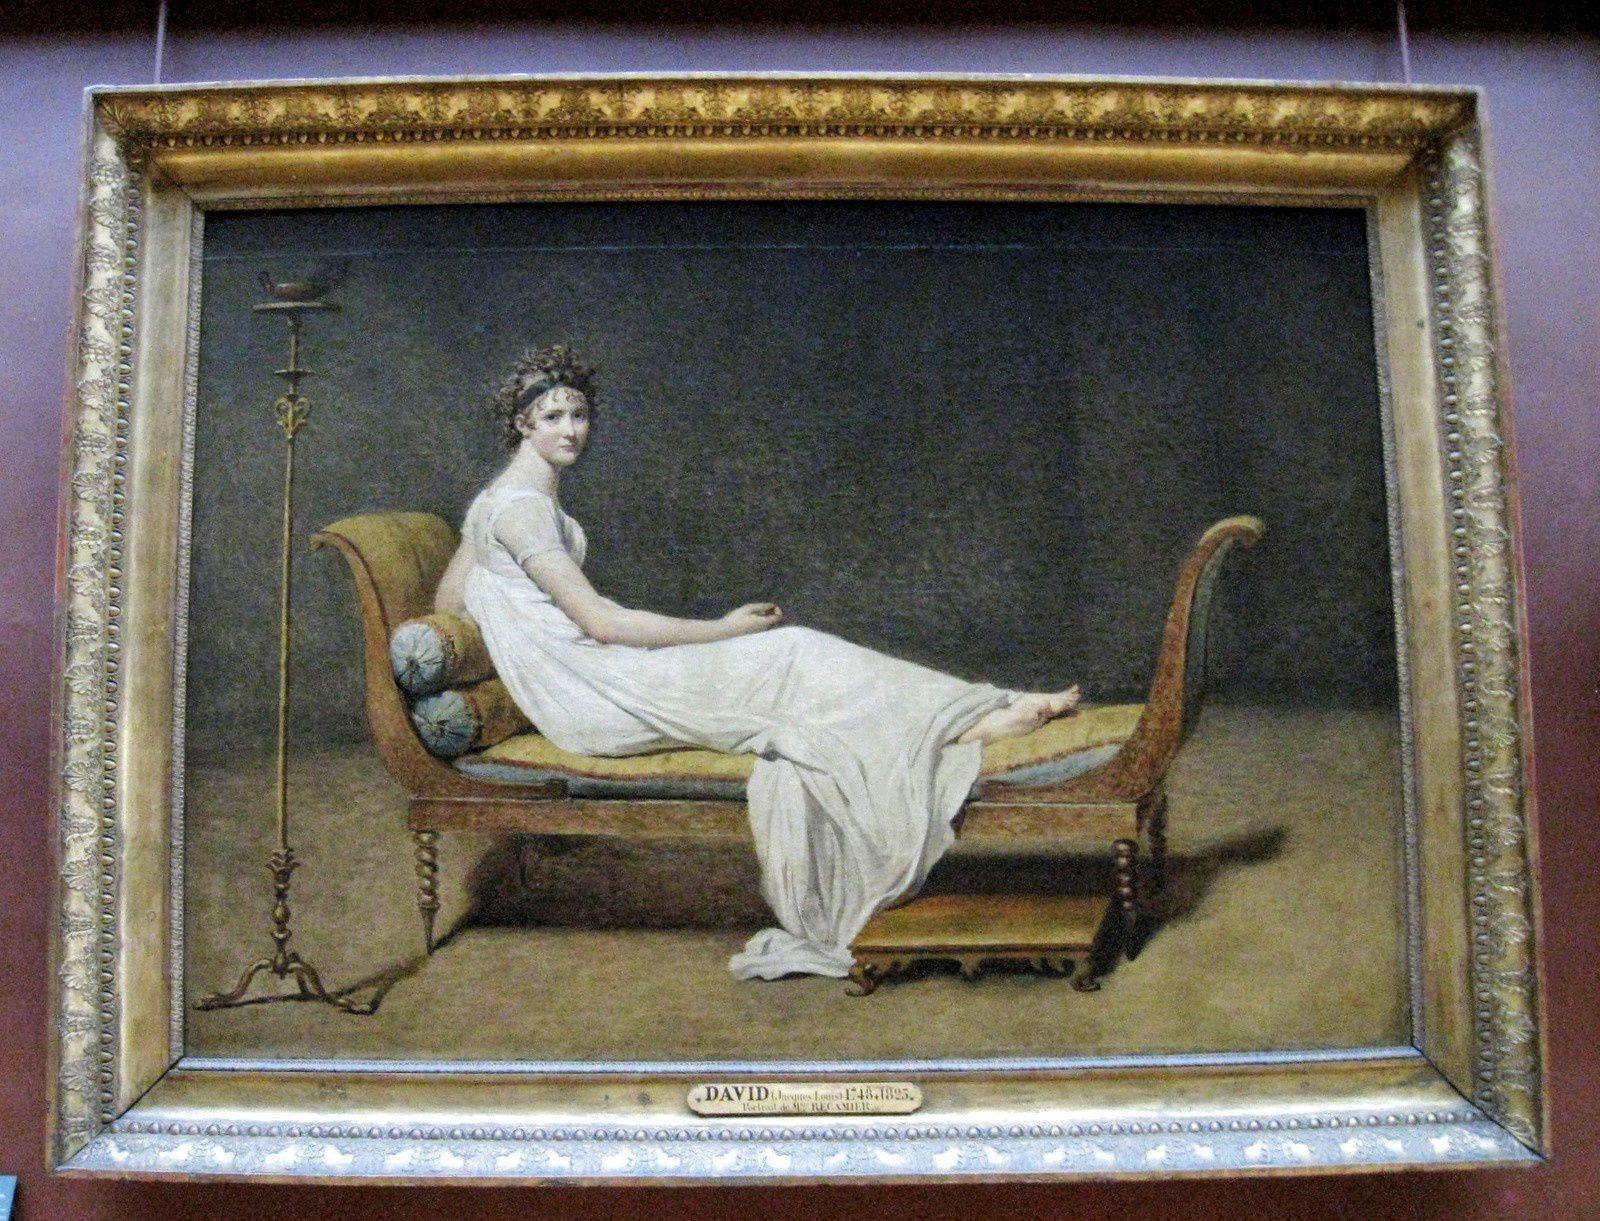 Louis David, madame Récamier